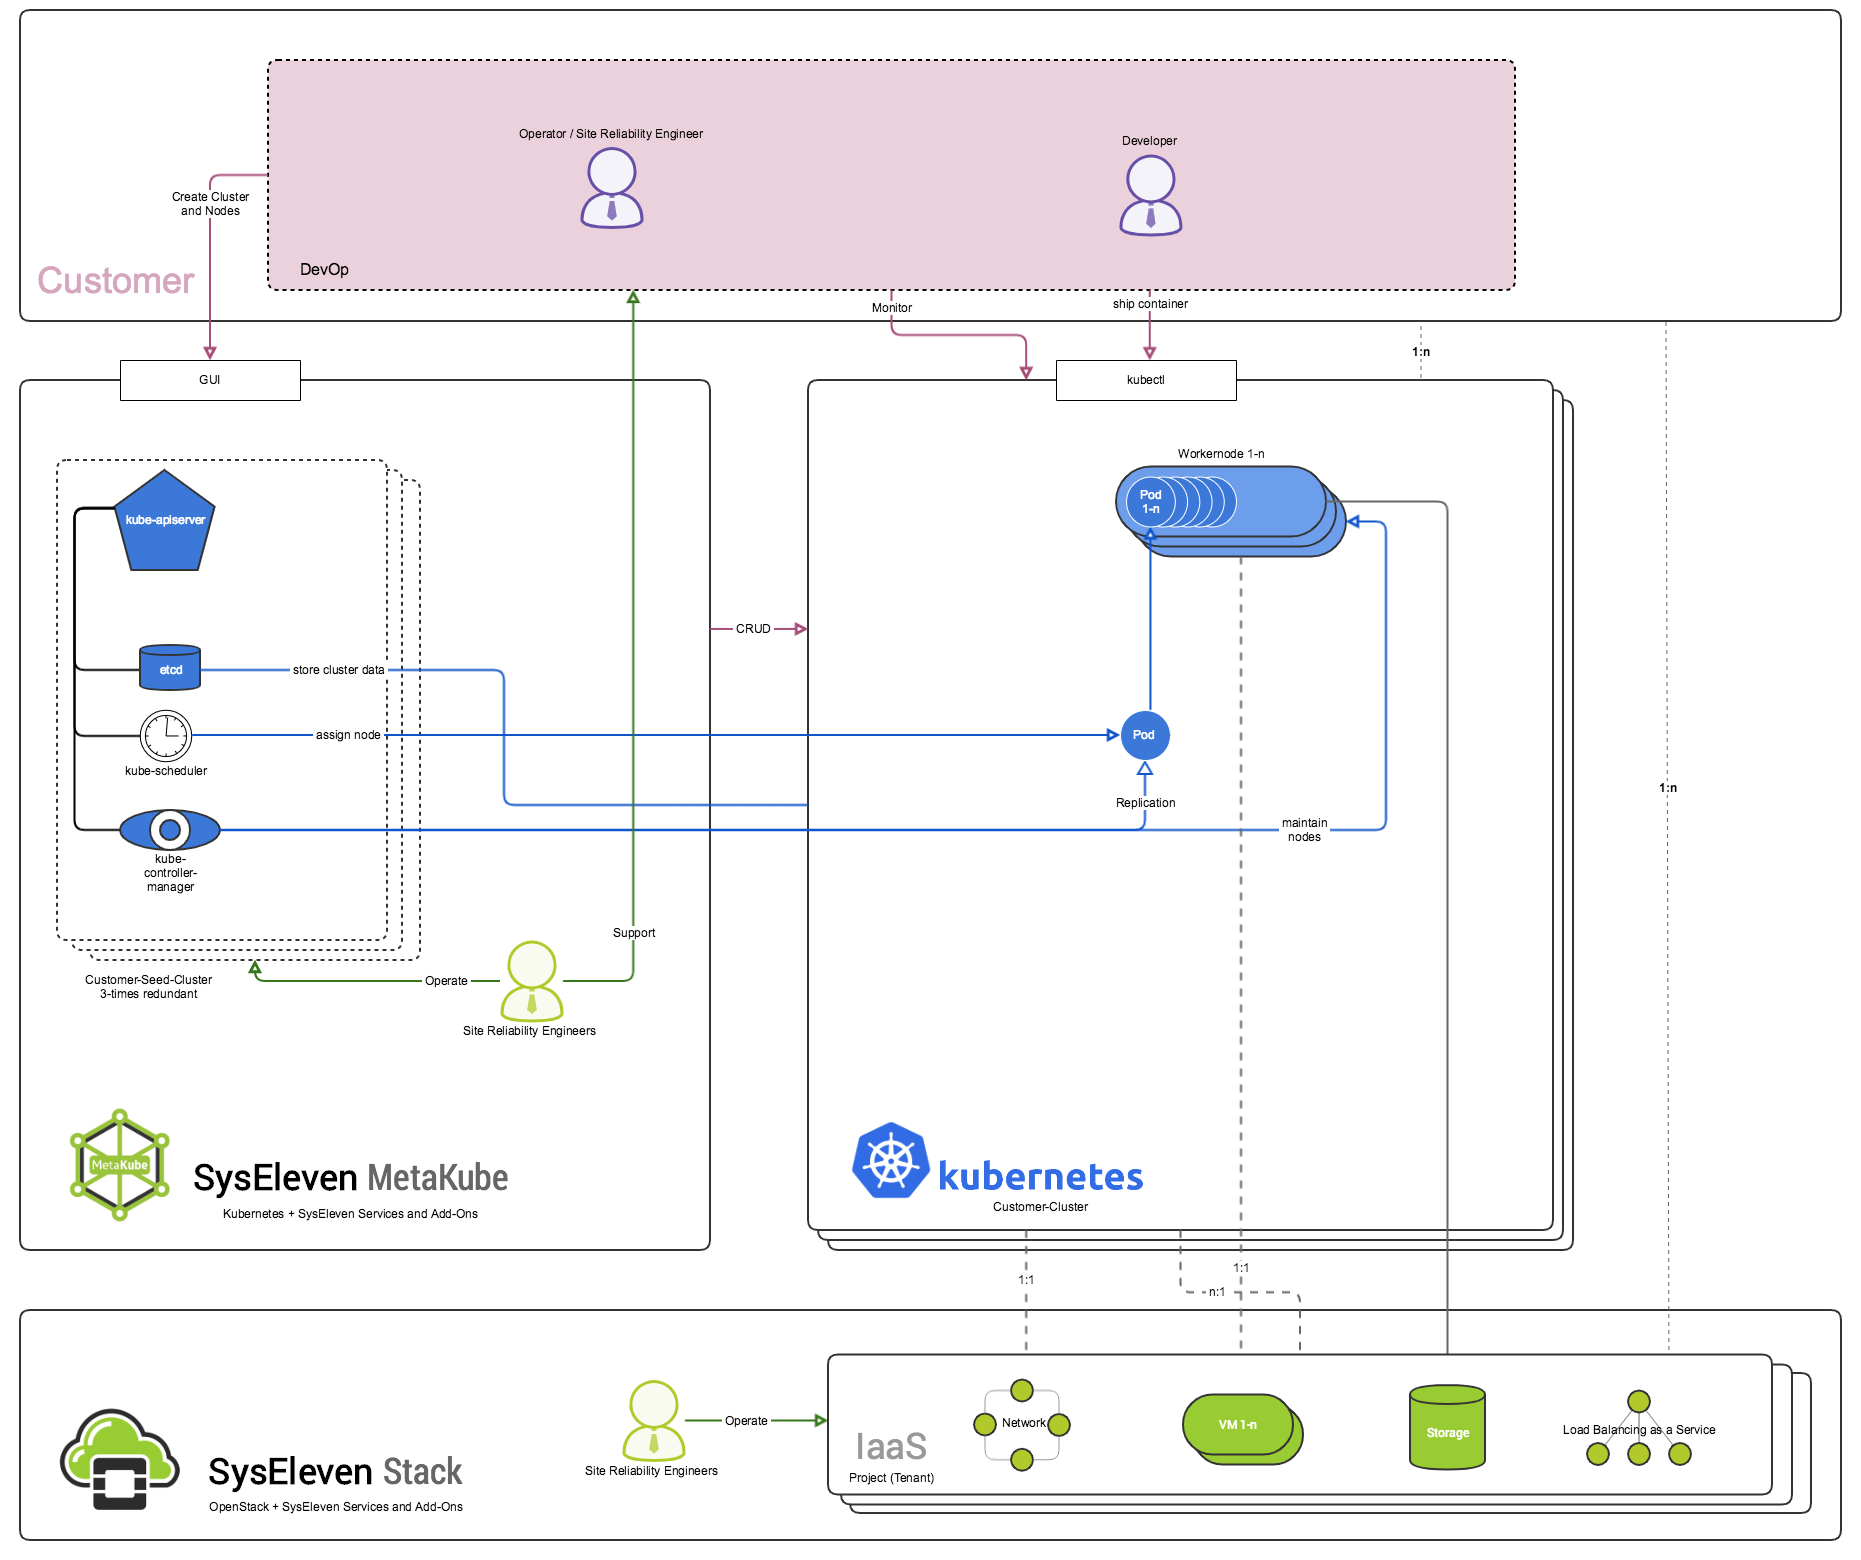 MetaKube Architecture Overview